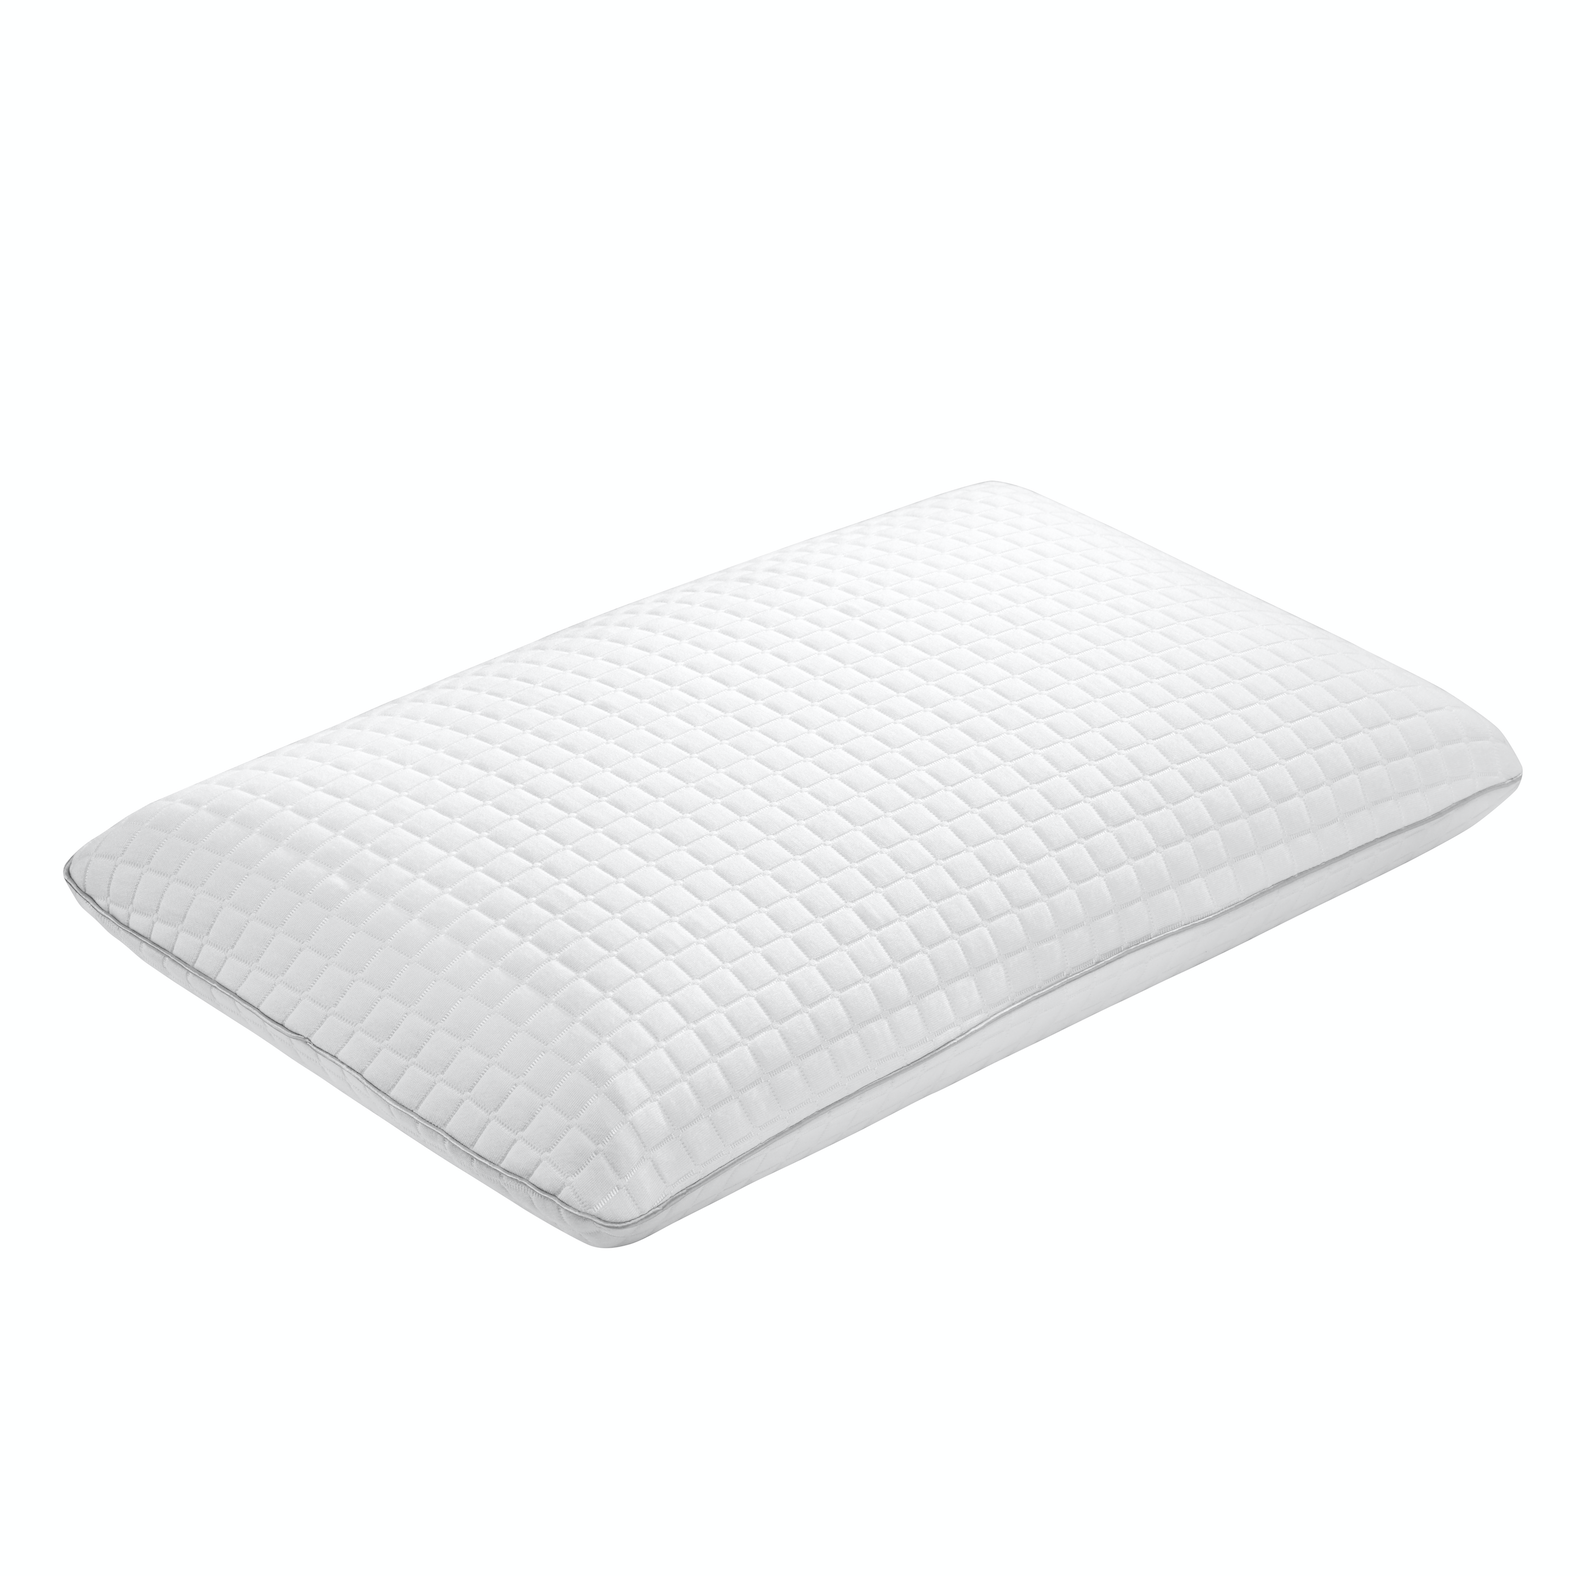 Cooling Bamboo Gel  Memory Foam Pillow  [5-7 Days U.S. Shipping]